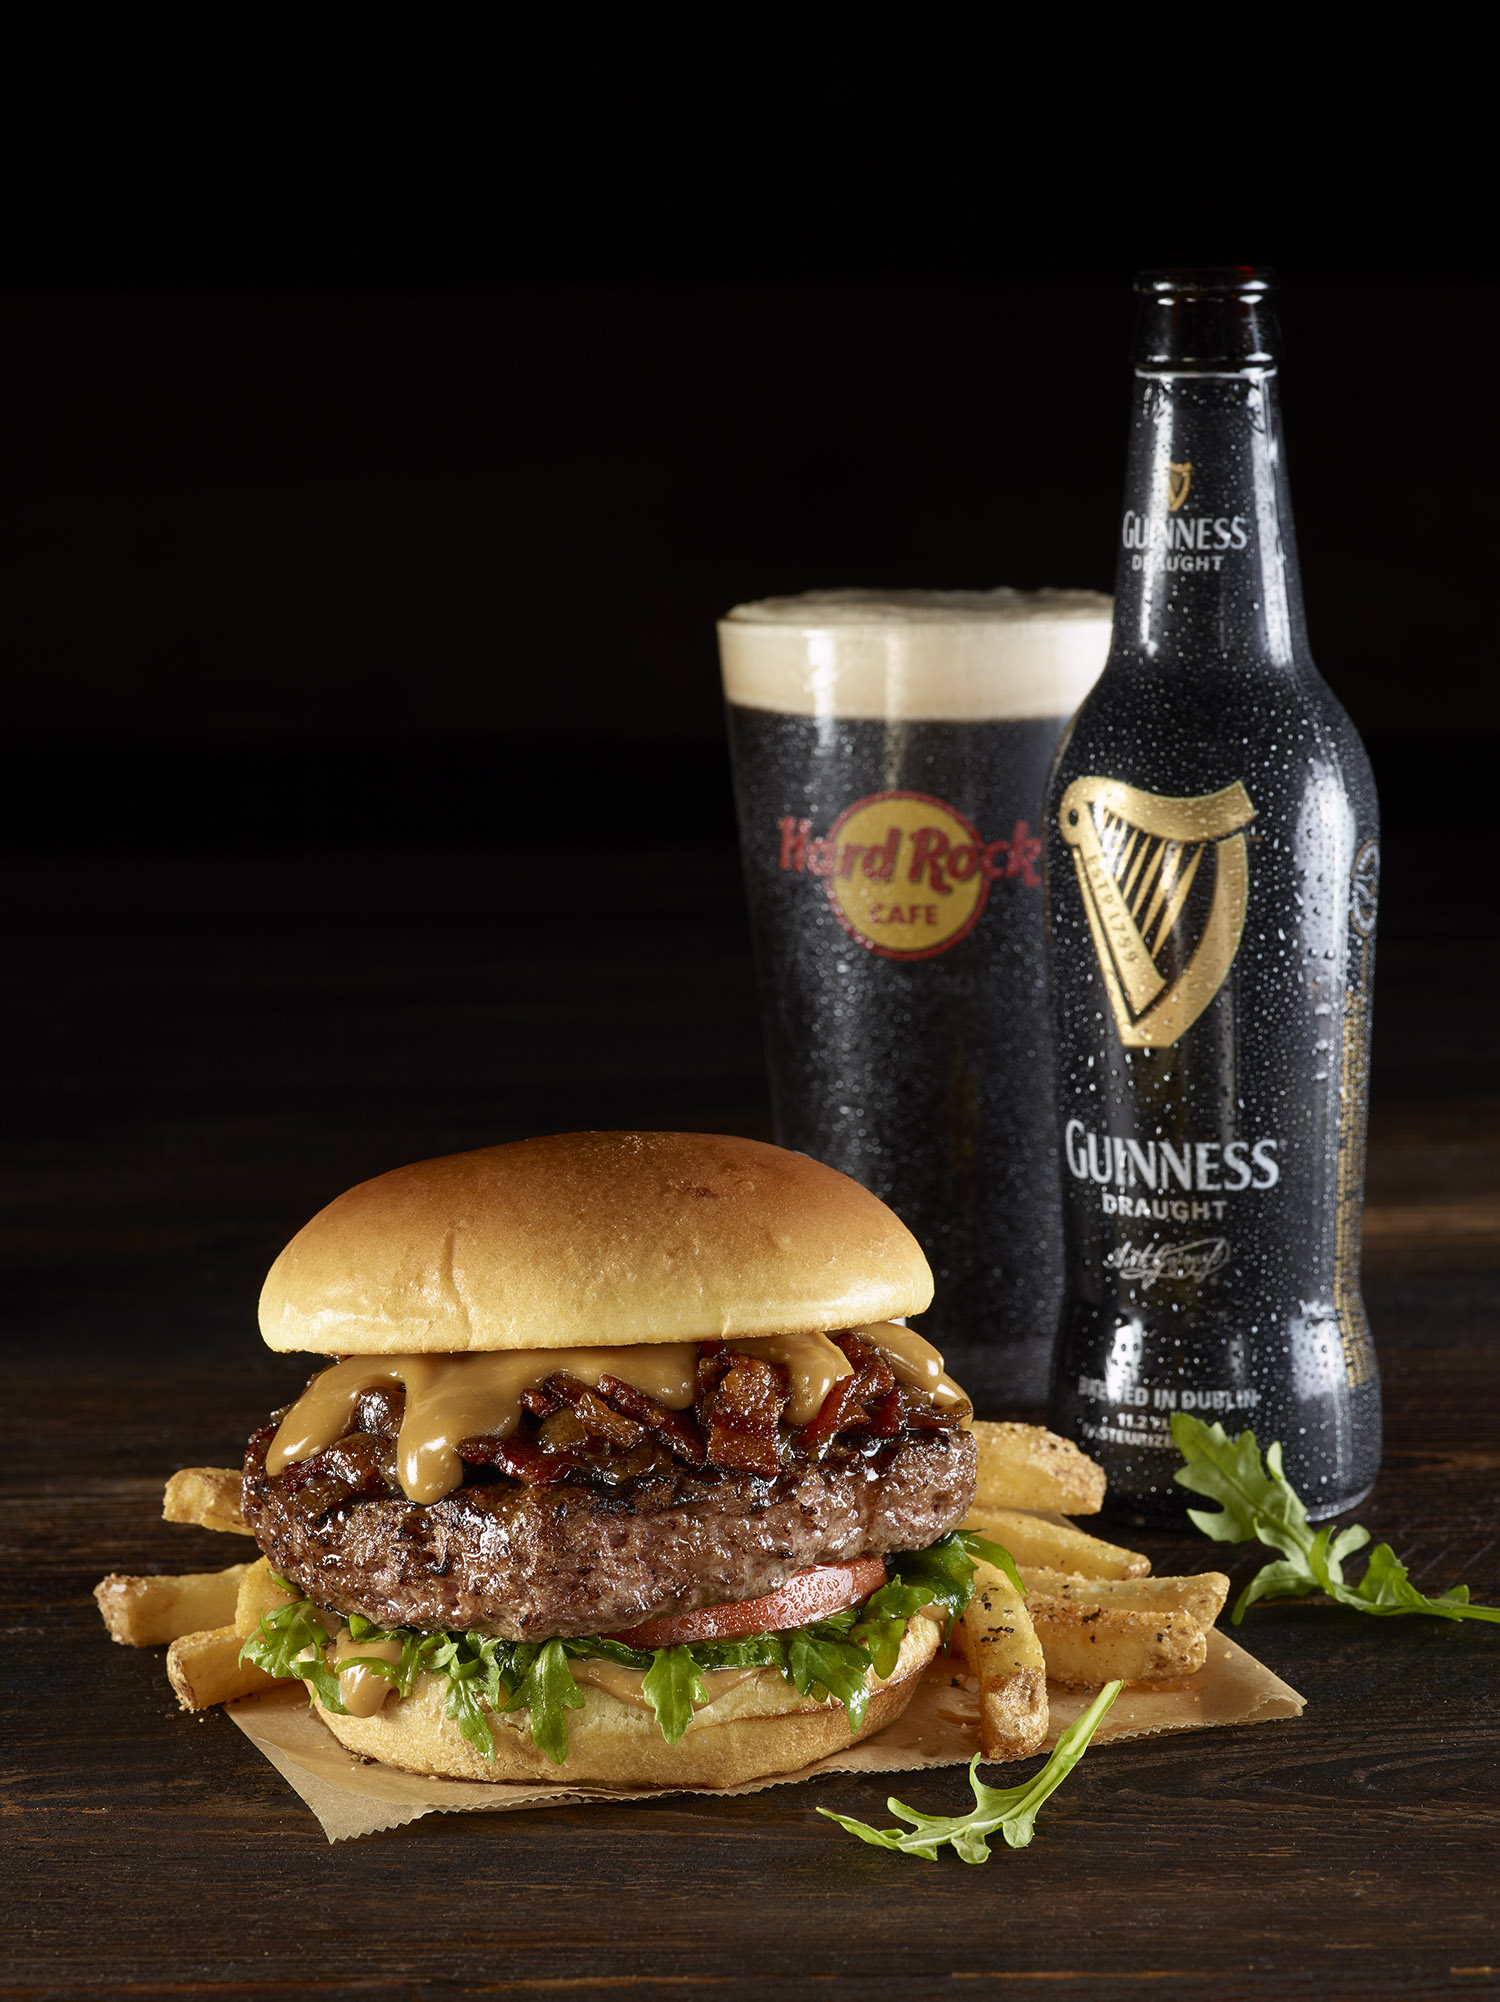 Hard Rock Cafe's Guinness & Jameson bacon cheeseburger, photo courtesy of Hard Rock Cafe.